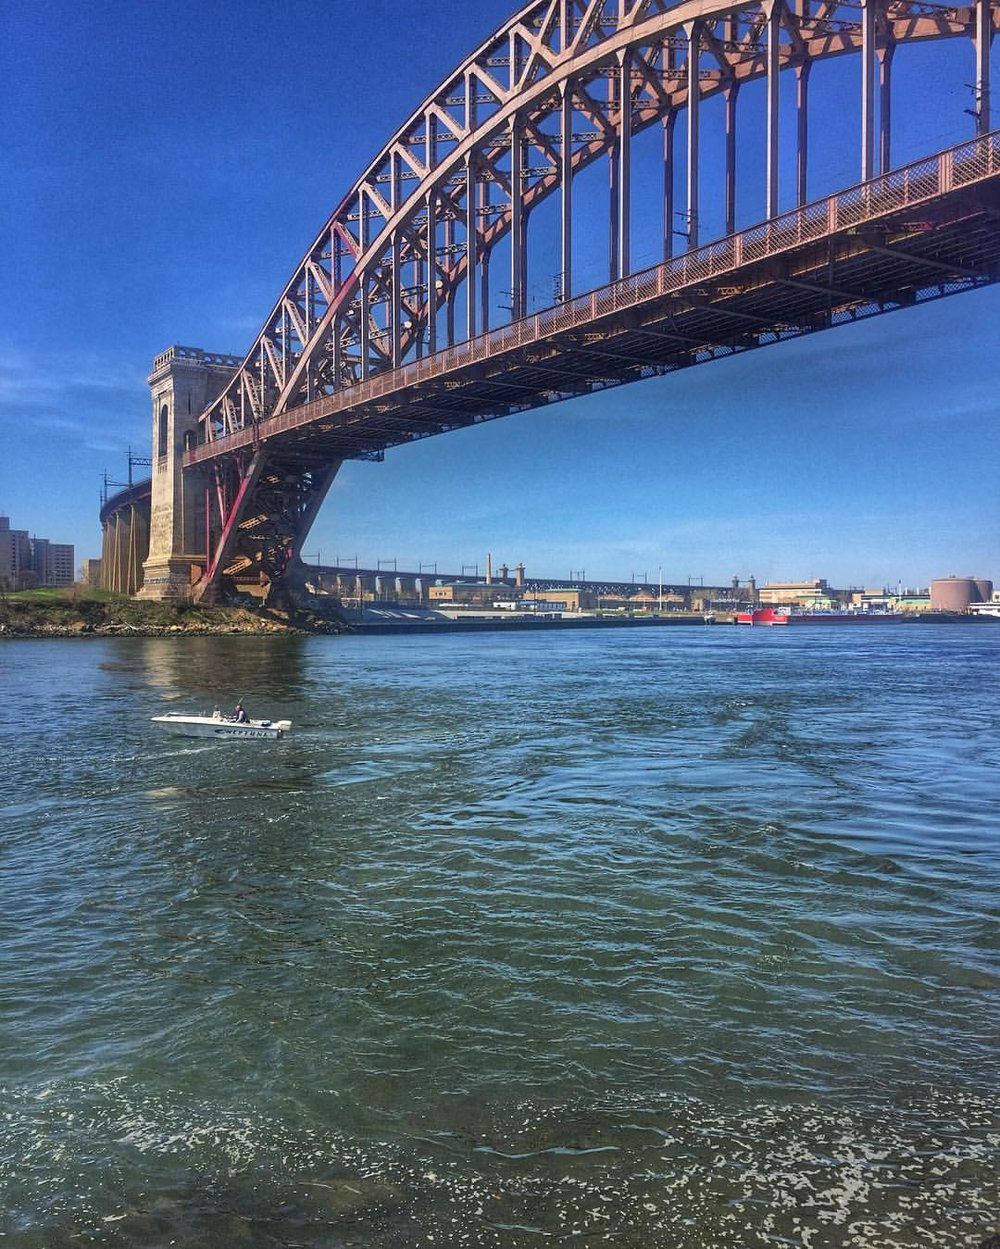 Barely made it out today to enjoy this beautiful weather so I'll have to rely on my photos from Astoria Park on Saturday. Also that little boat was called Neptune. #queenscapes #astoriaqueens #astoria #astoriany #queenslove #astoriapark #ditmars #hellgatebridge #ditmarsblvd #heartofqueens (at Astoria Park)